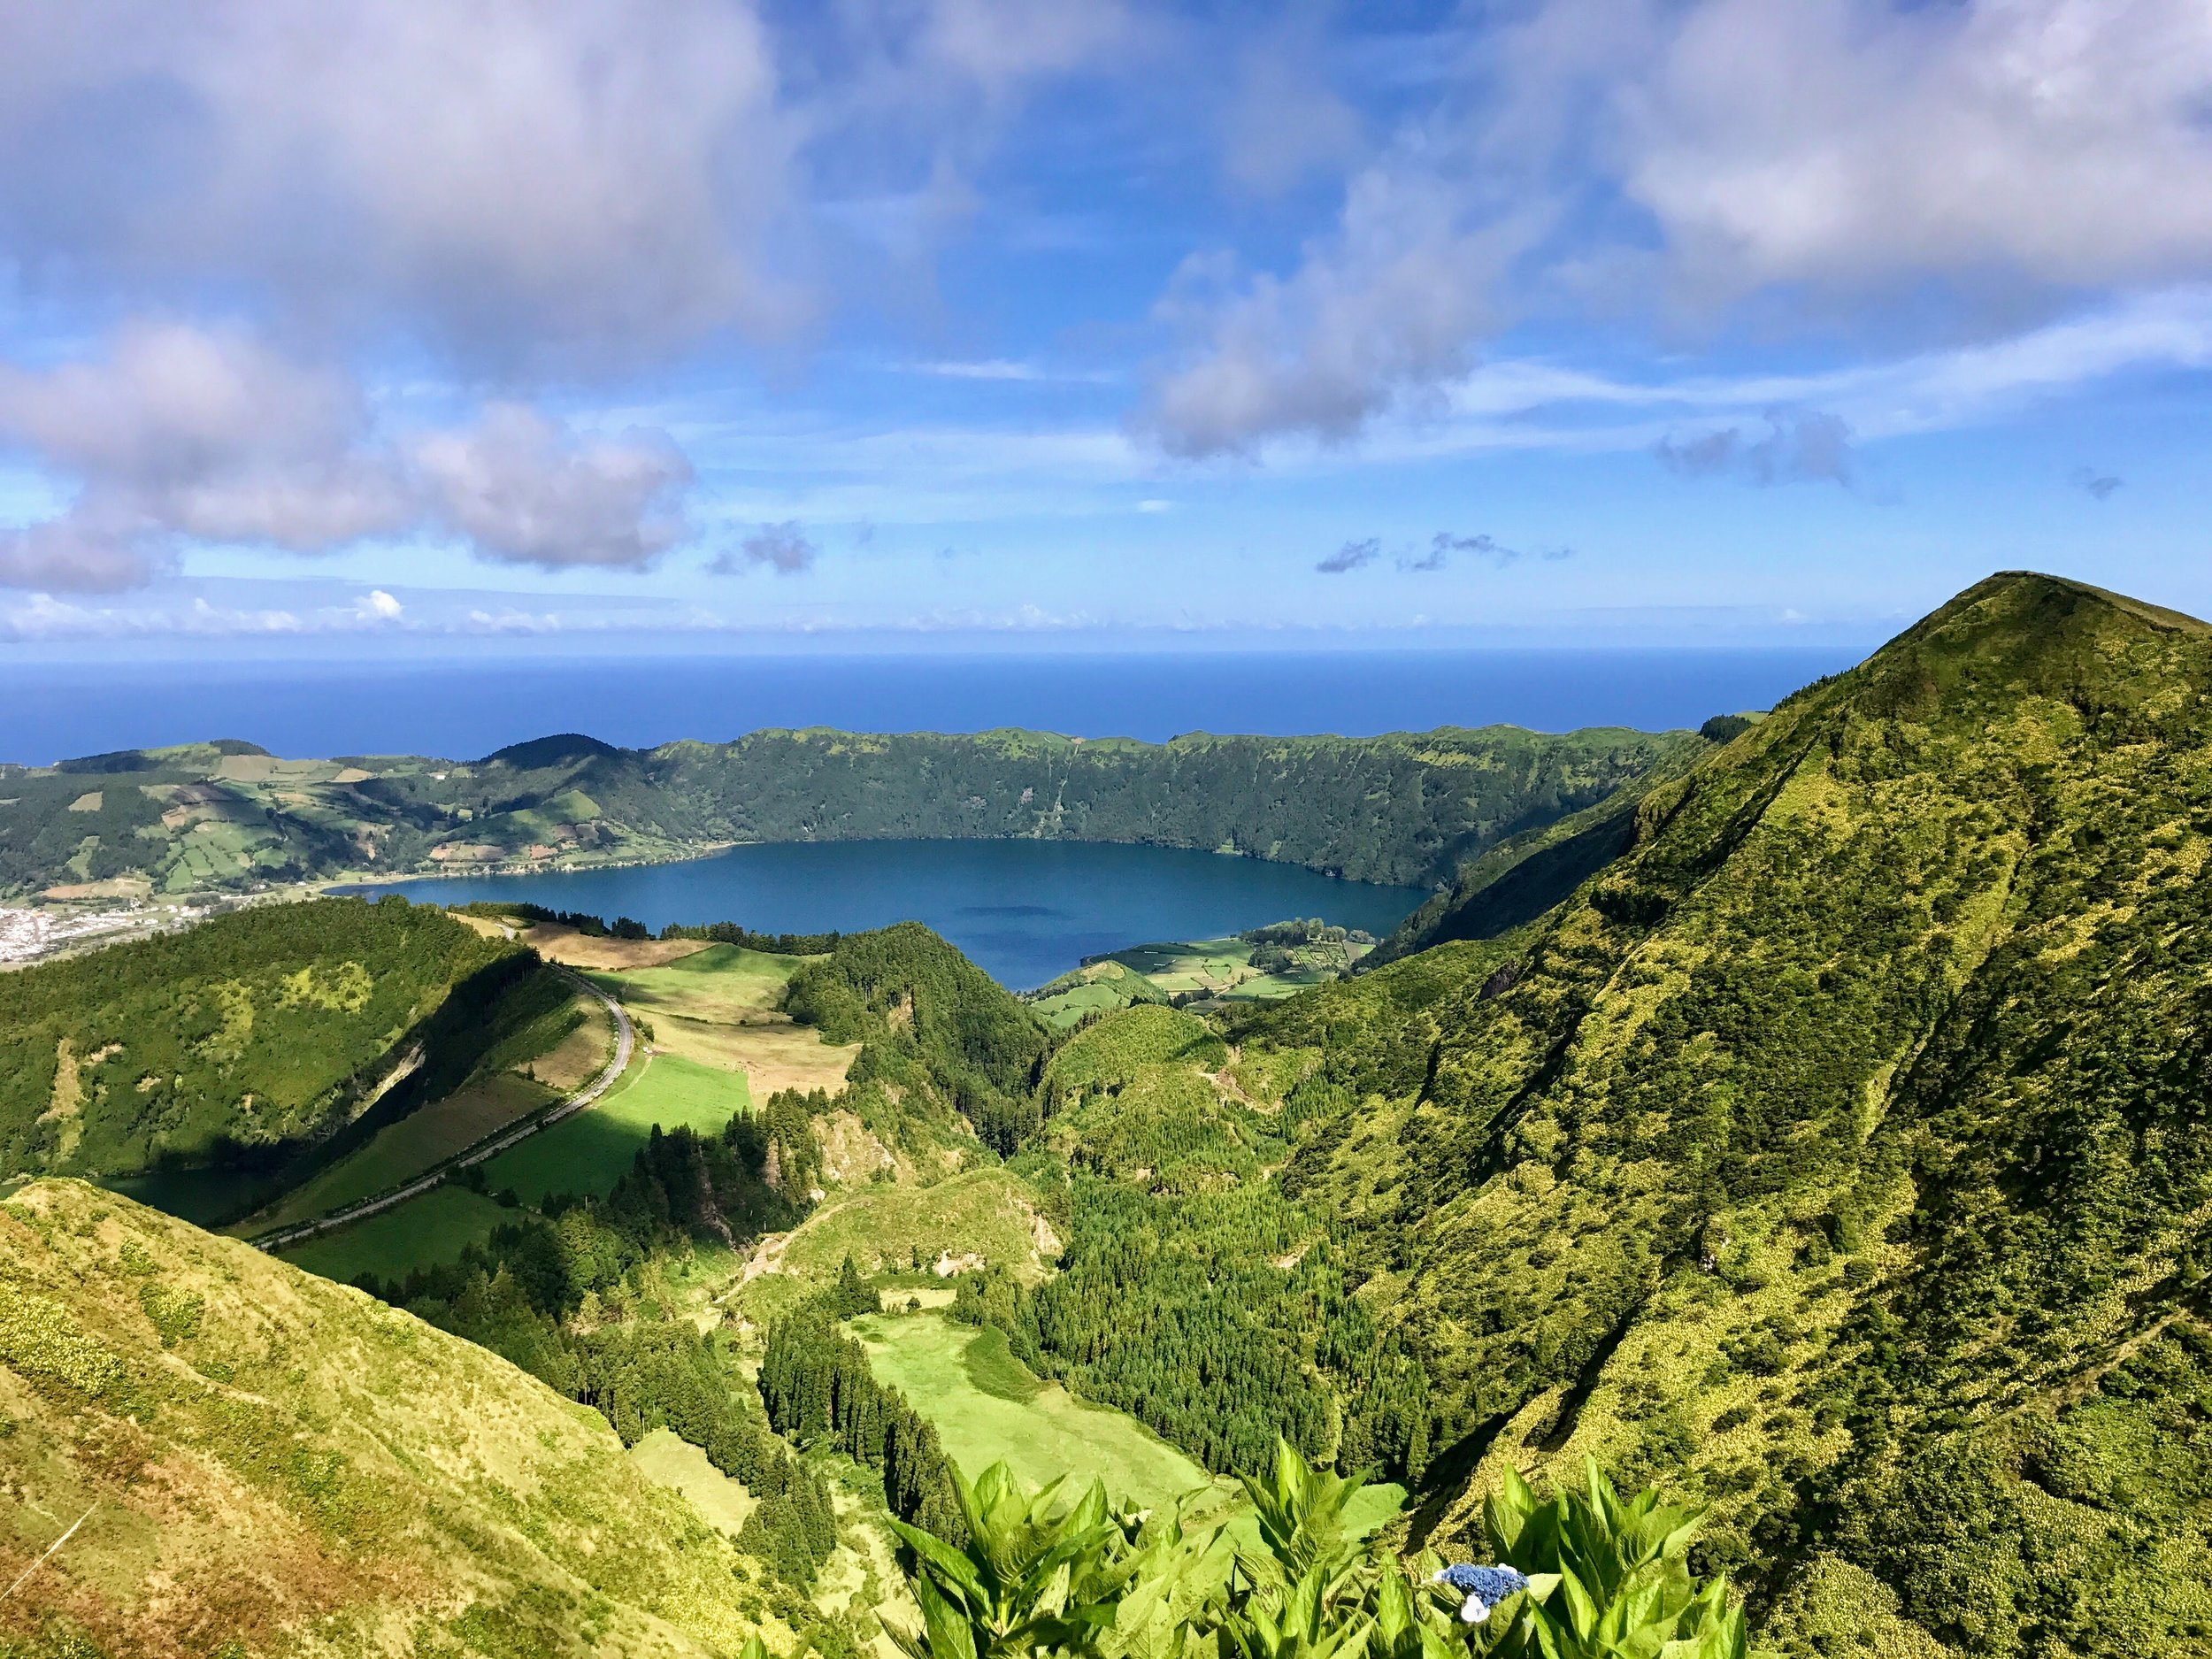 Going to  miradouro  was my top thing to do in Sao Miguel. This was one of the took my breath away moments. After the short hike to the top of this point, my jaw dropped. One of the most beautiful things I've ever seen.